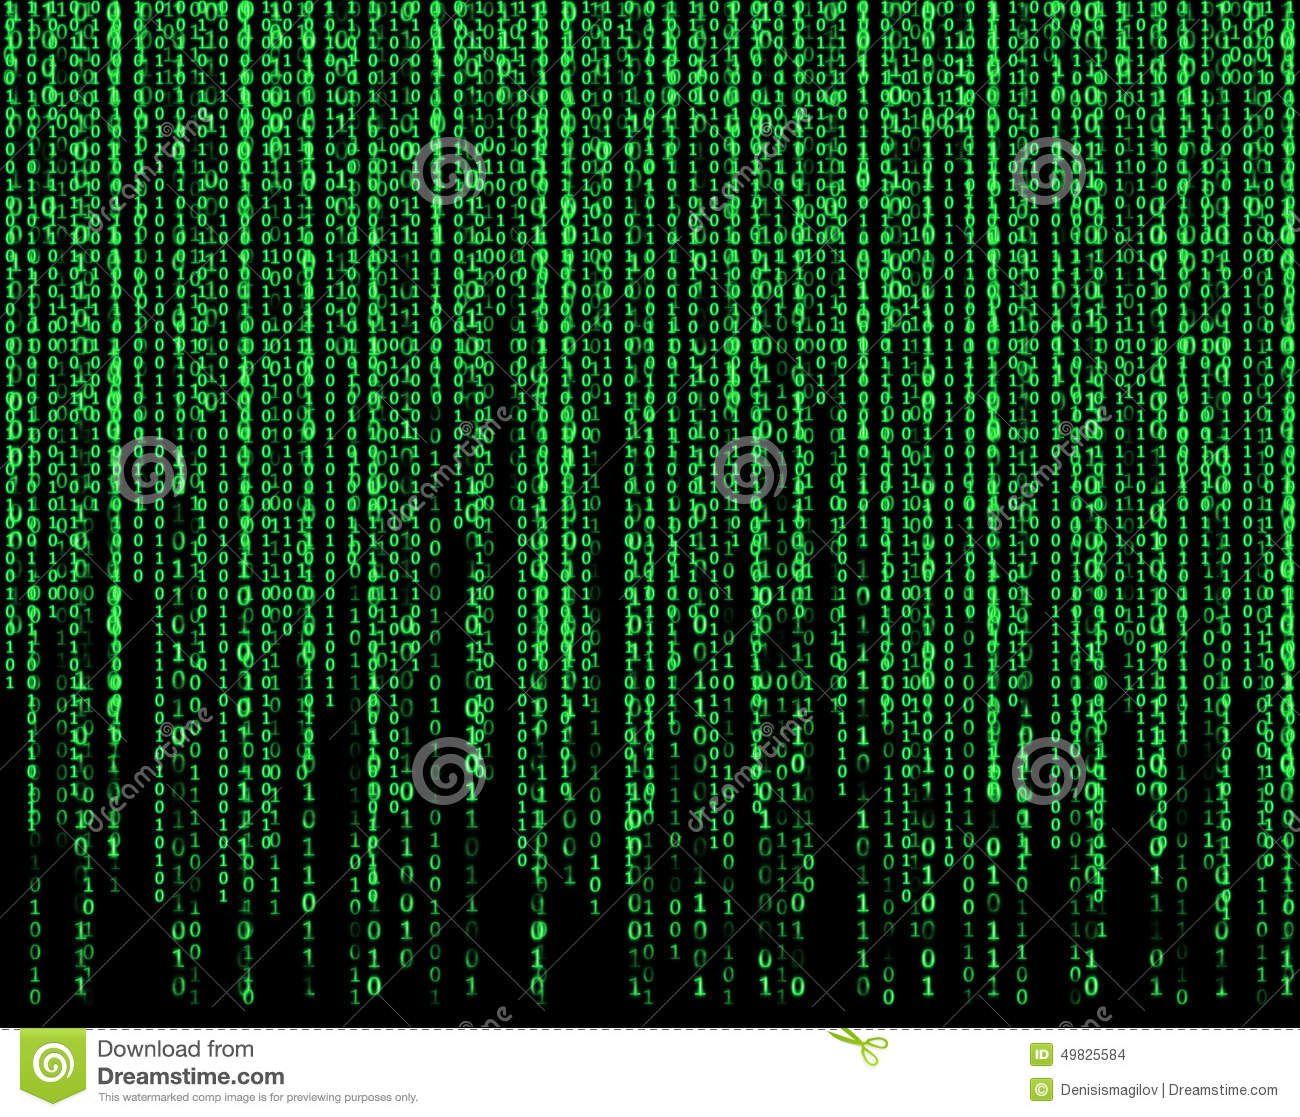 Matrix Falling Code Wallpaper Download Green Matrix Stock Illustration Image 49825584